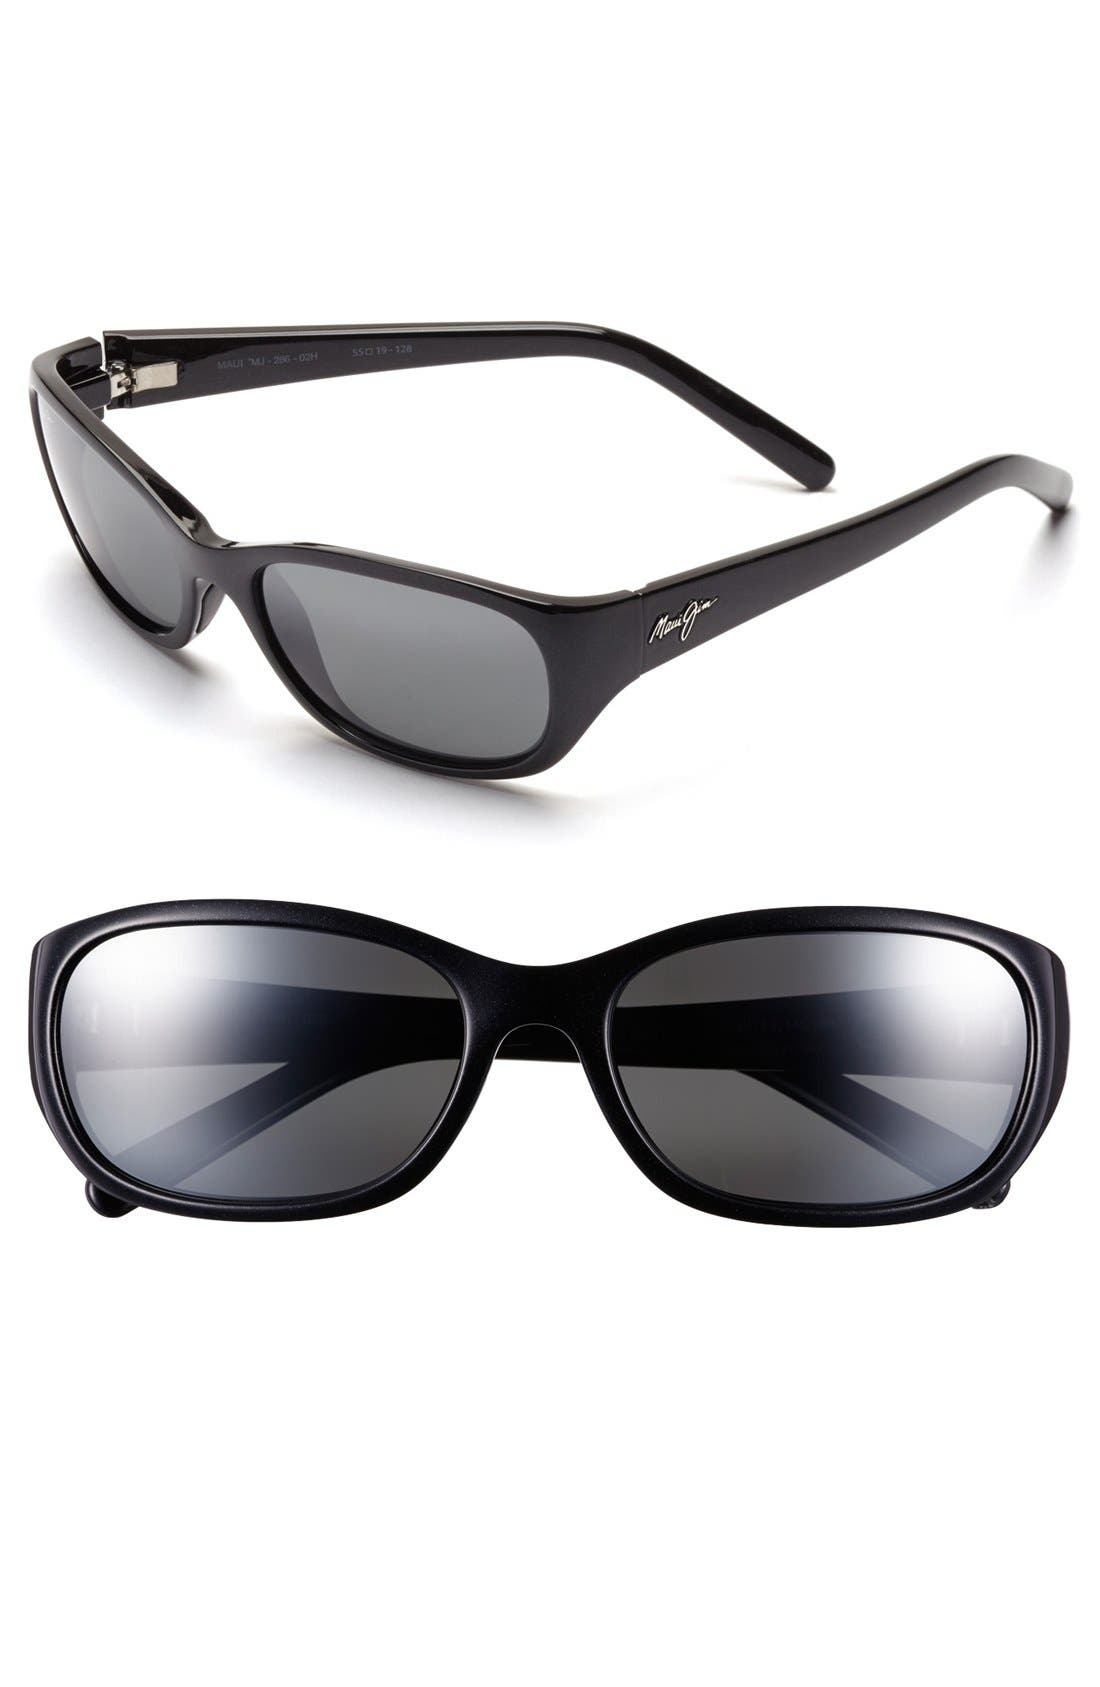 Kuiaha Bay 55mm PolarizedPlus<sup>®</sup> Sport Sunglasses,                             Main thumbnail 1, color,                             Midnight Black